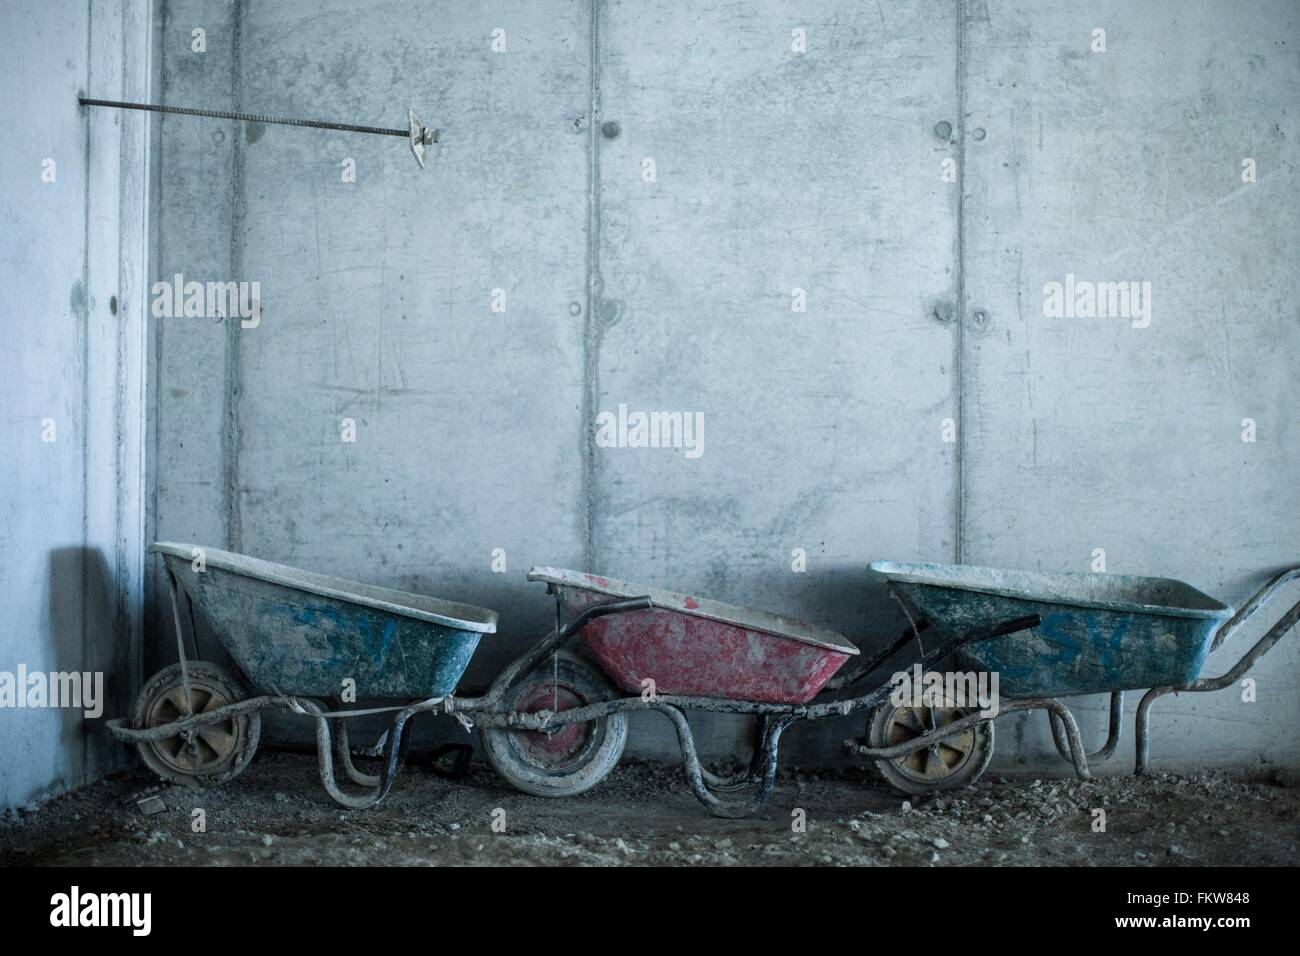 Row of three wheelbarrows on construction site - Stock Image